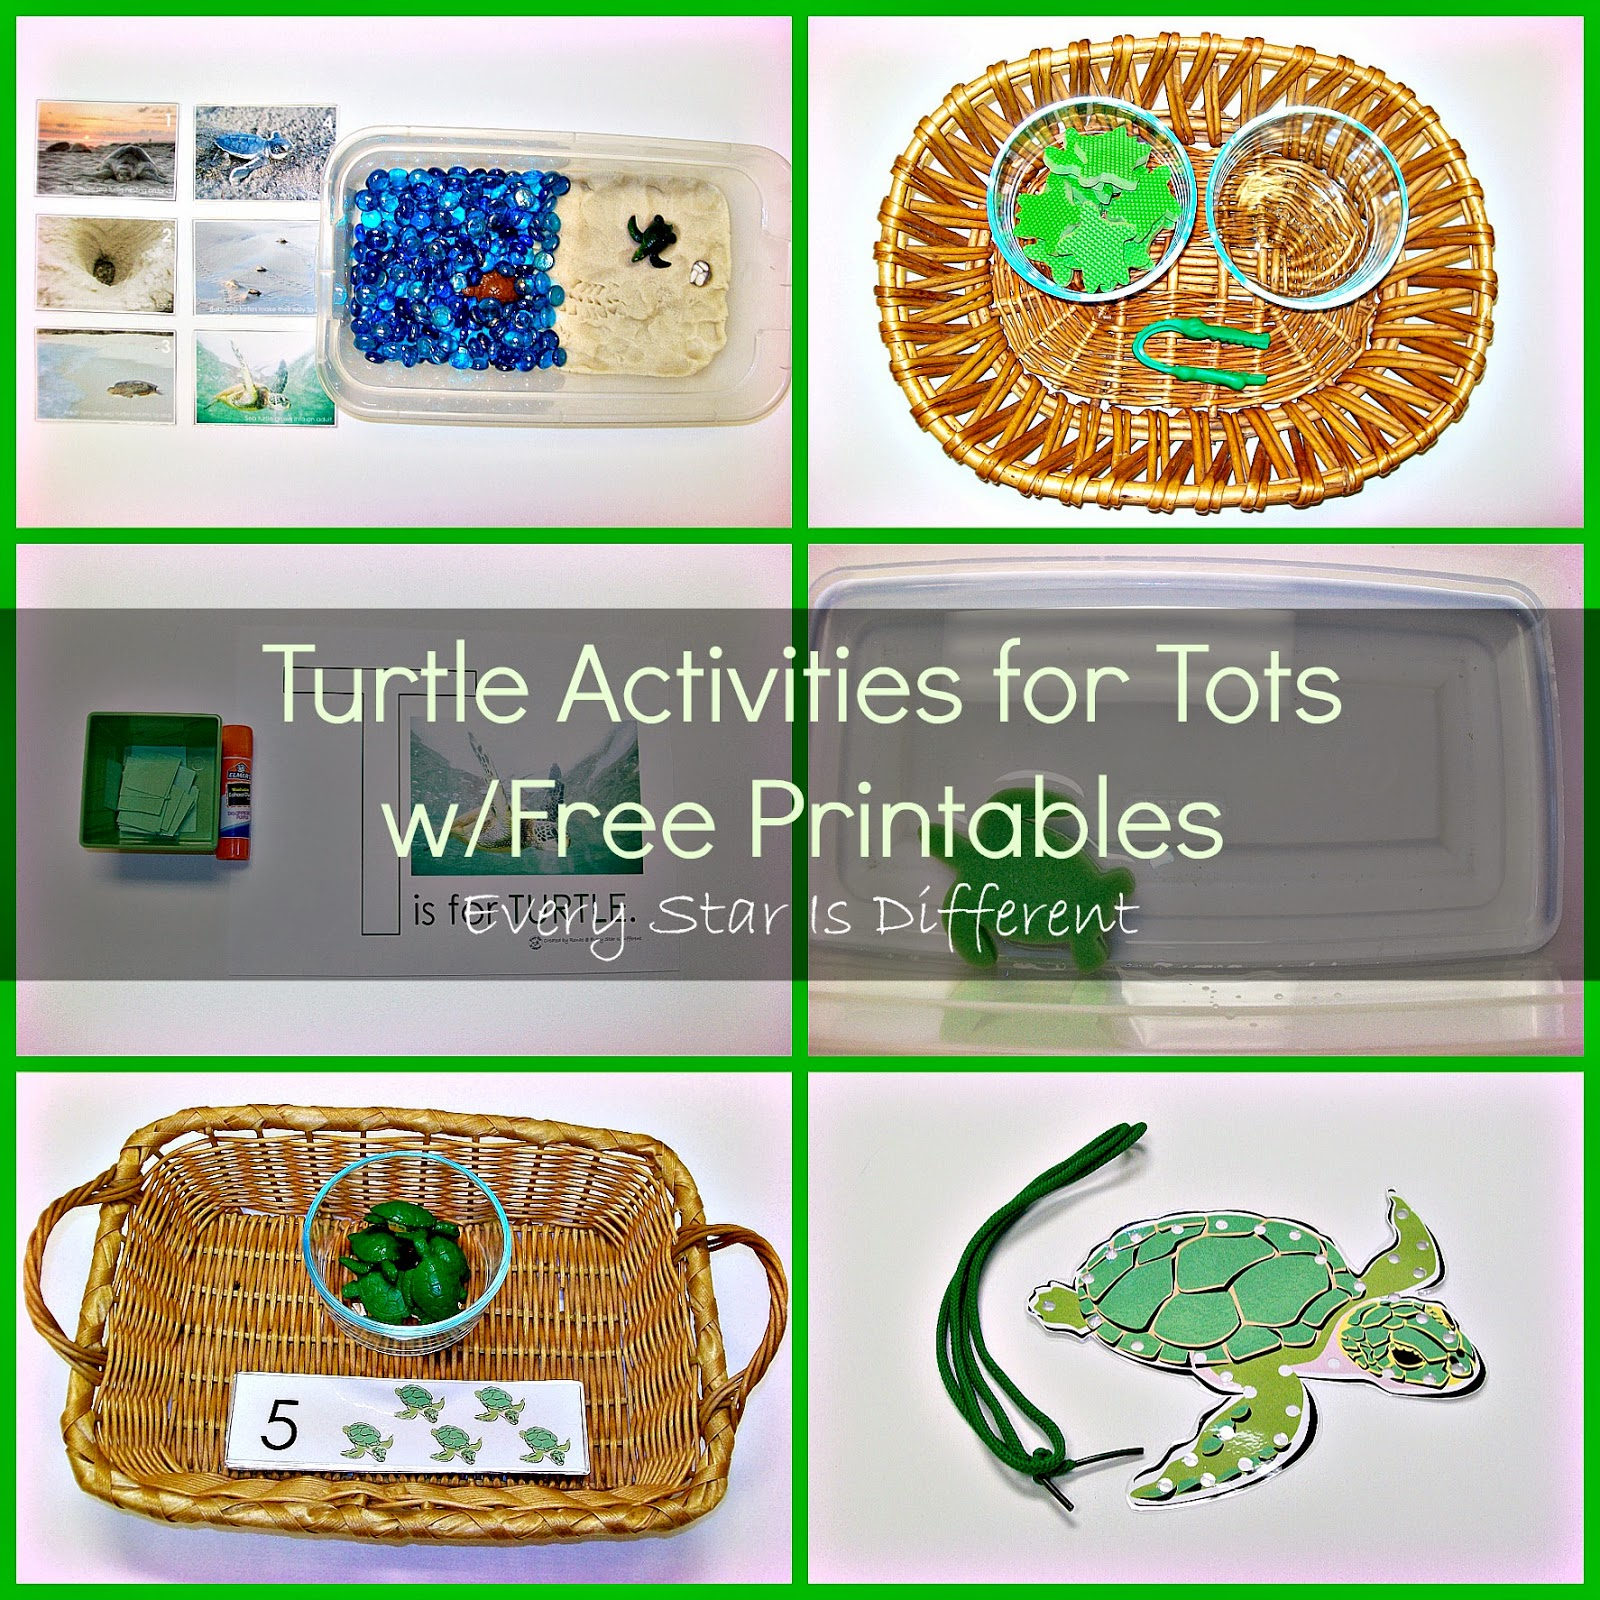 Sea Turtle Activities for Tots & Preschoolers